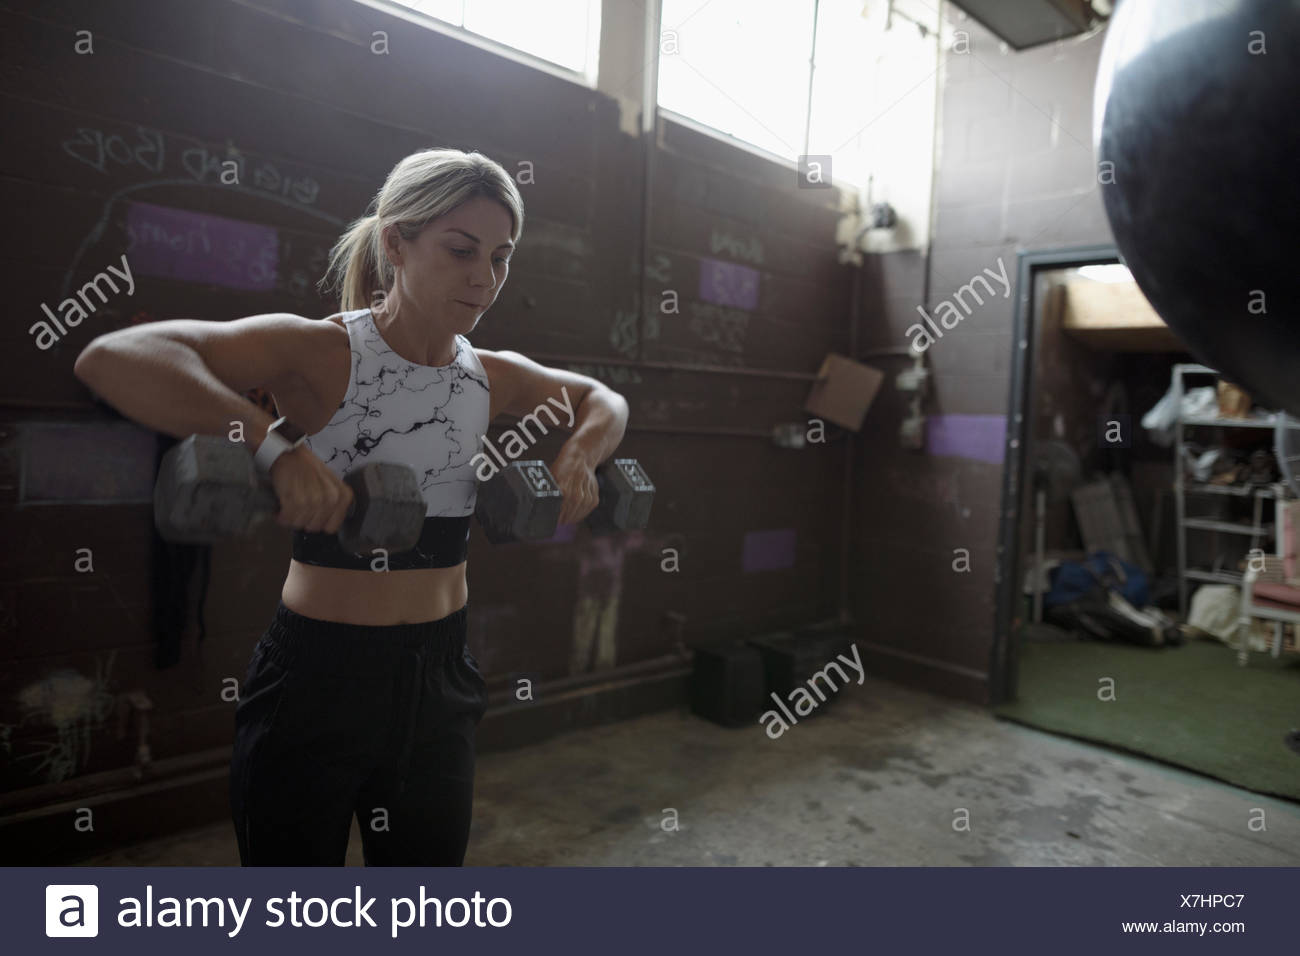 Woman weightlifting with dumbbells in gritty gym - Stock Image